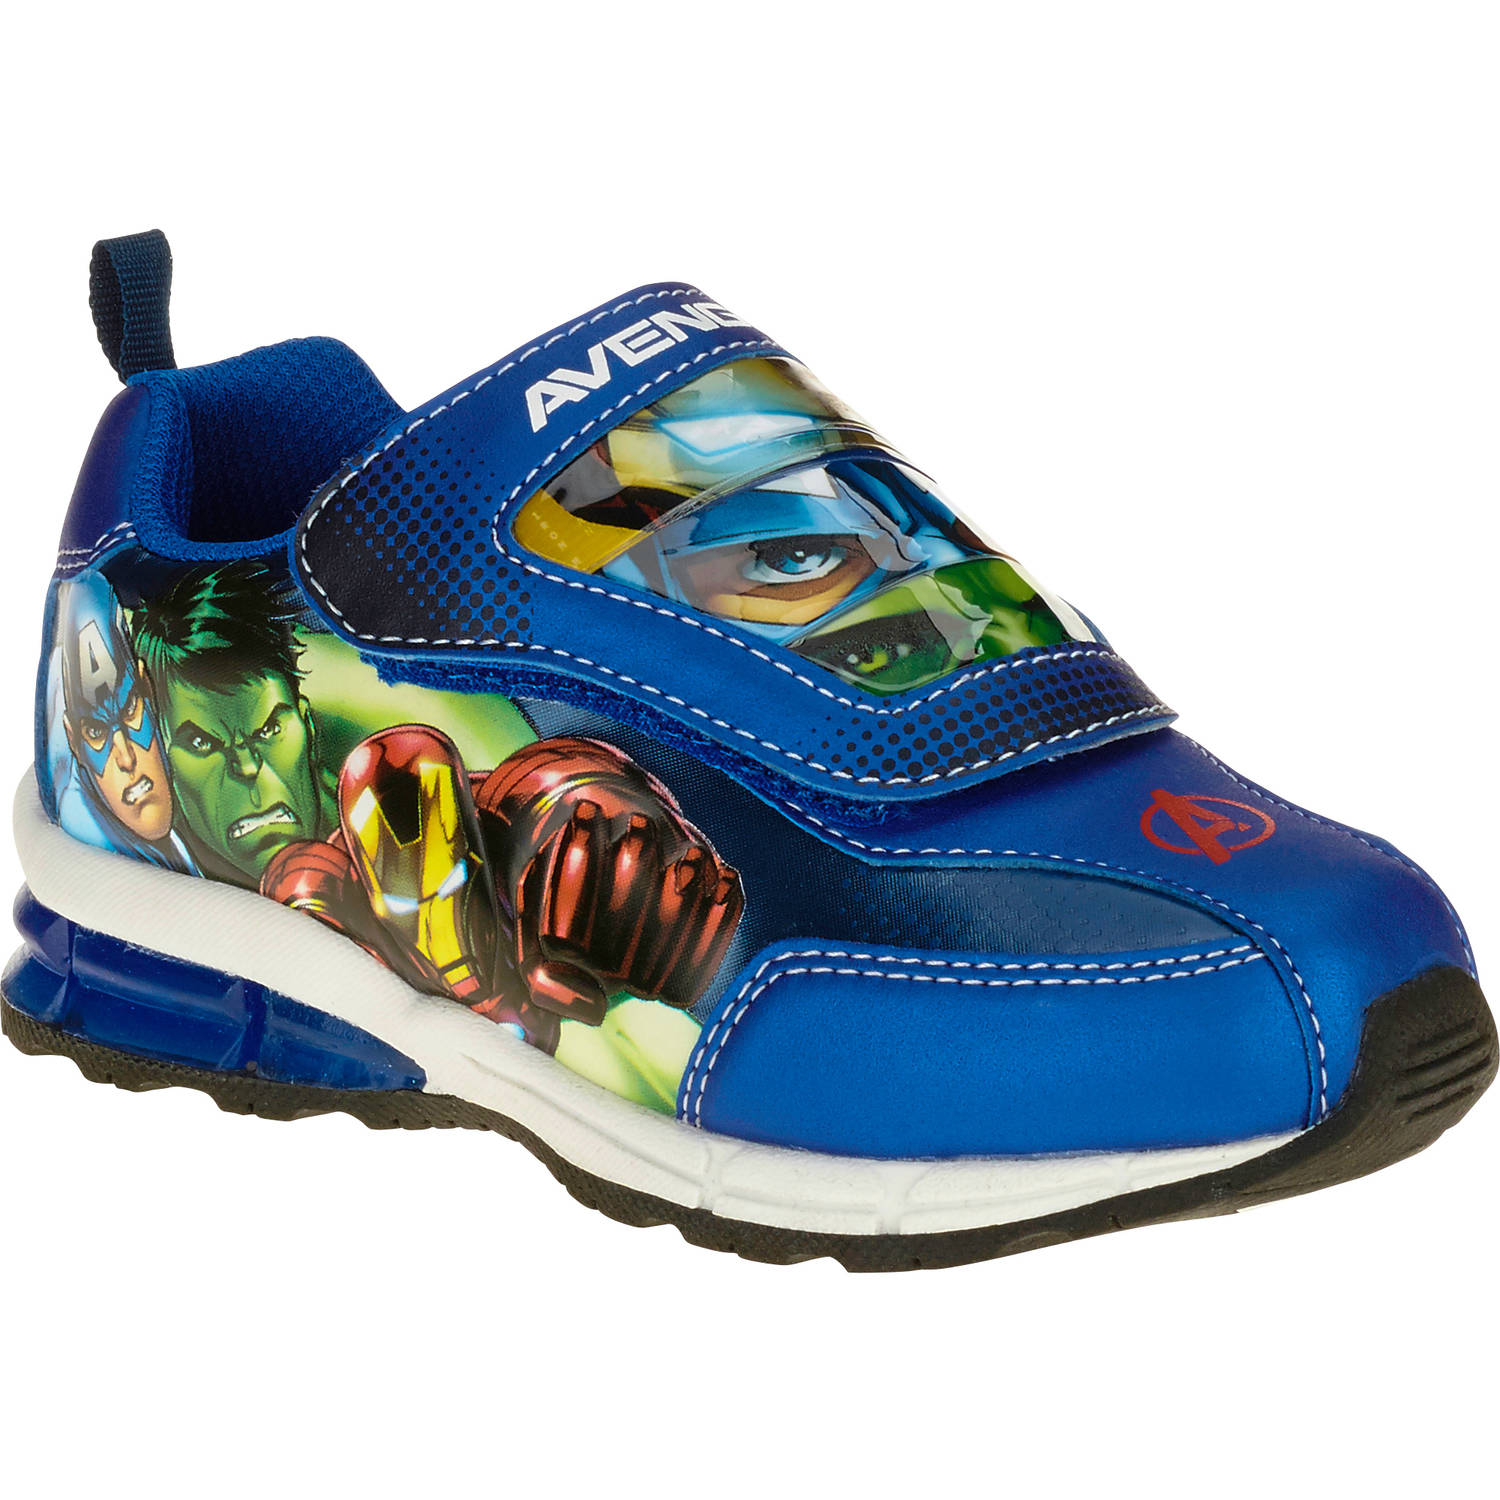 toddler boys athletic running shoe walmart